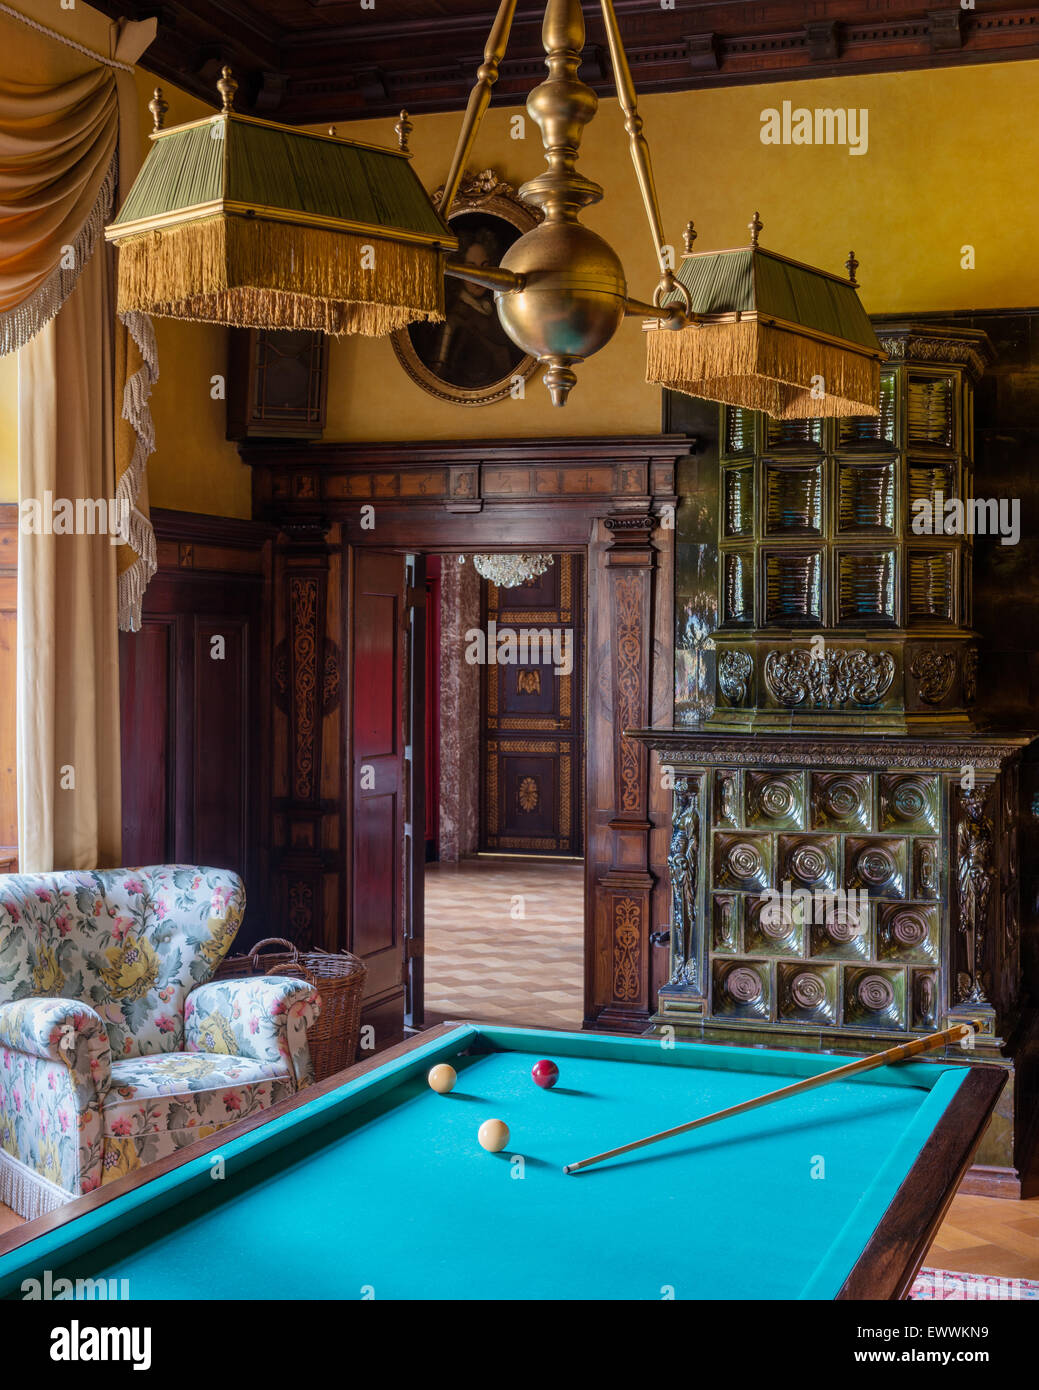 Billiard table in room with tiled stove and chintz upholstered armchair - Stock Image